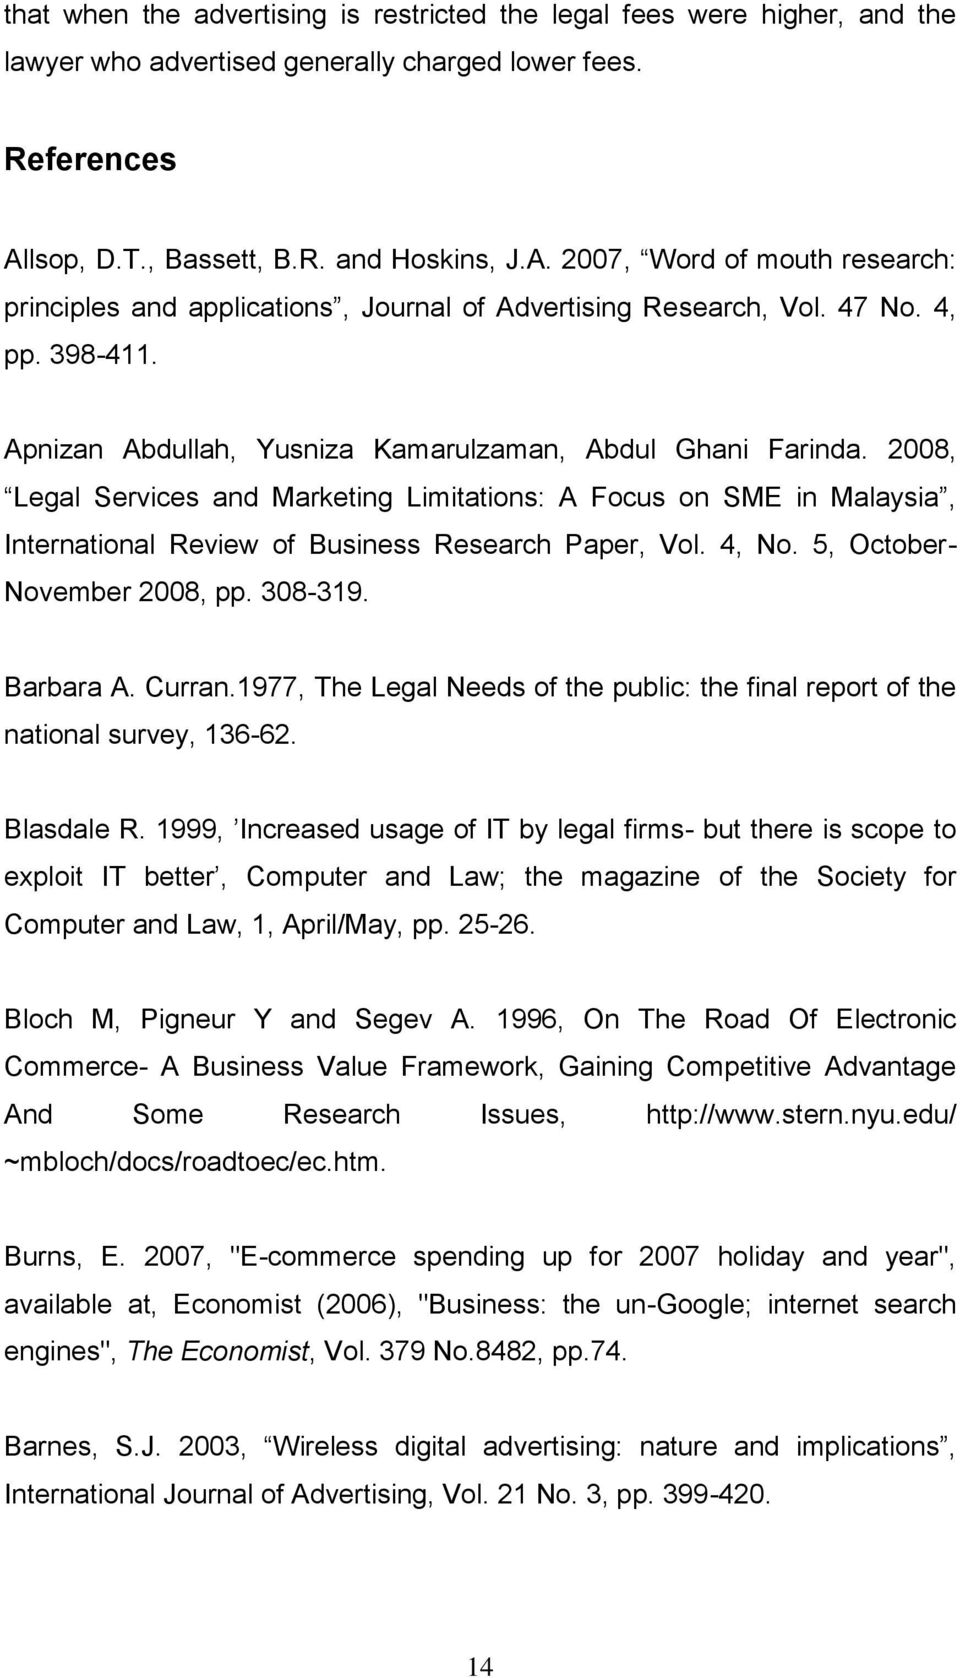 Apnizan Abdullah, Yusniza Kamarulzaman, Abdul Ghani Farinda. 2008, Legal Services and Marketing Limitations: A Focus on SME in Malaysia, International Review of Business Research Paper, Vol. 4, No.